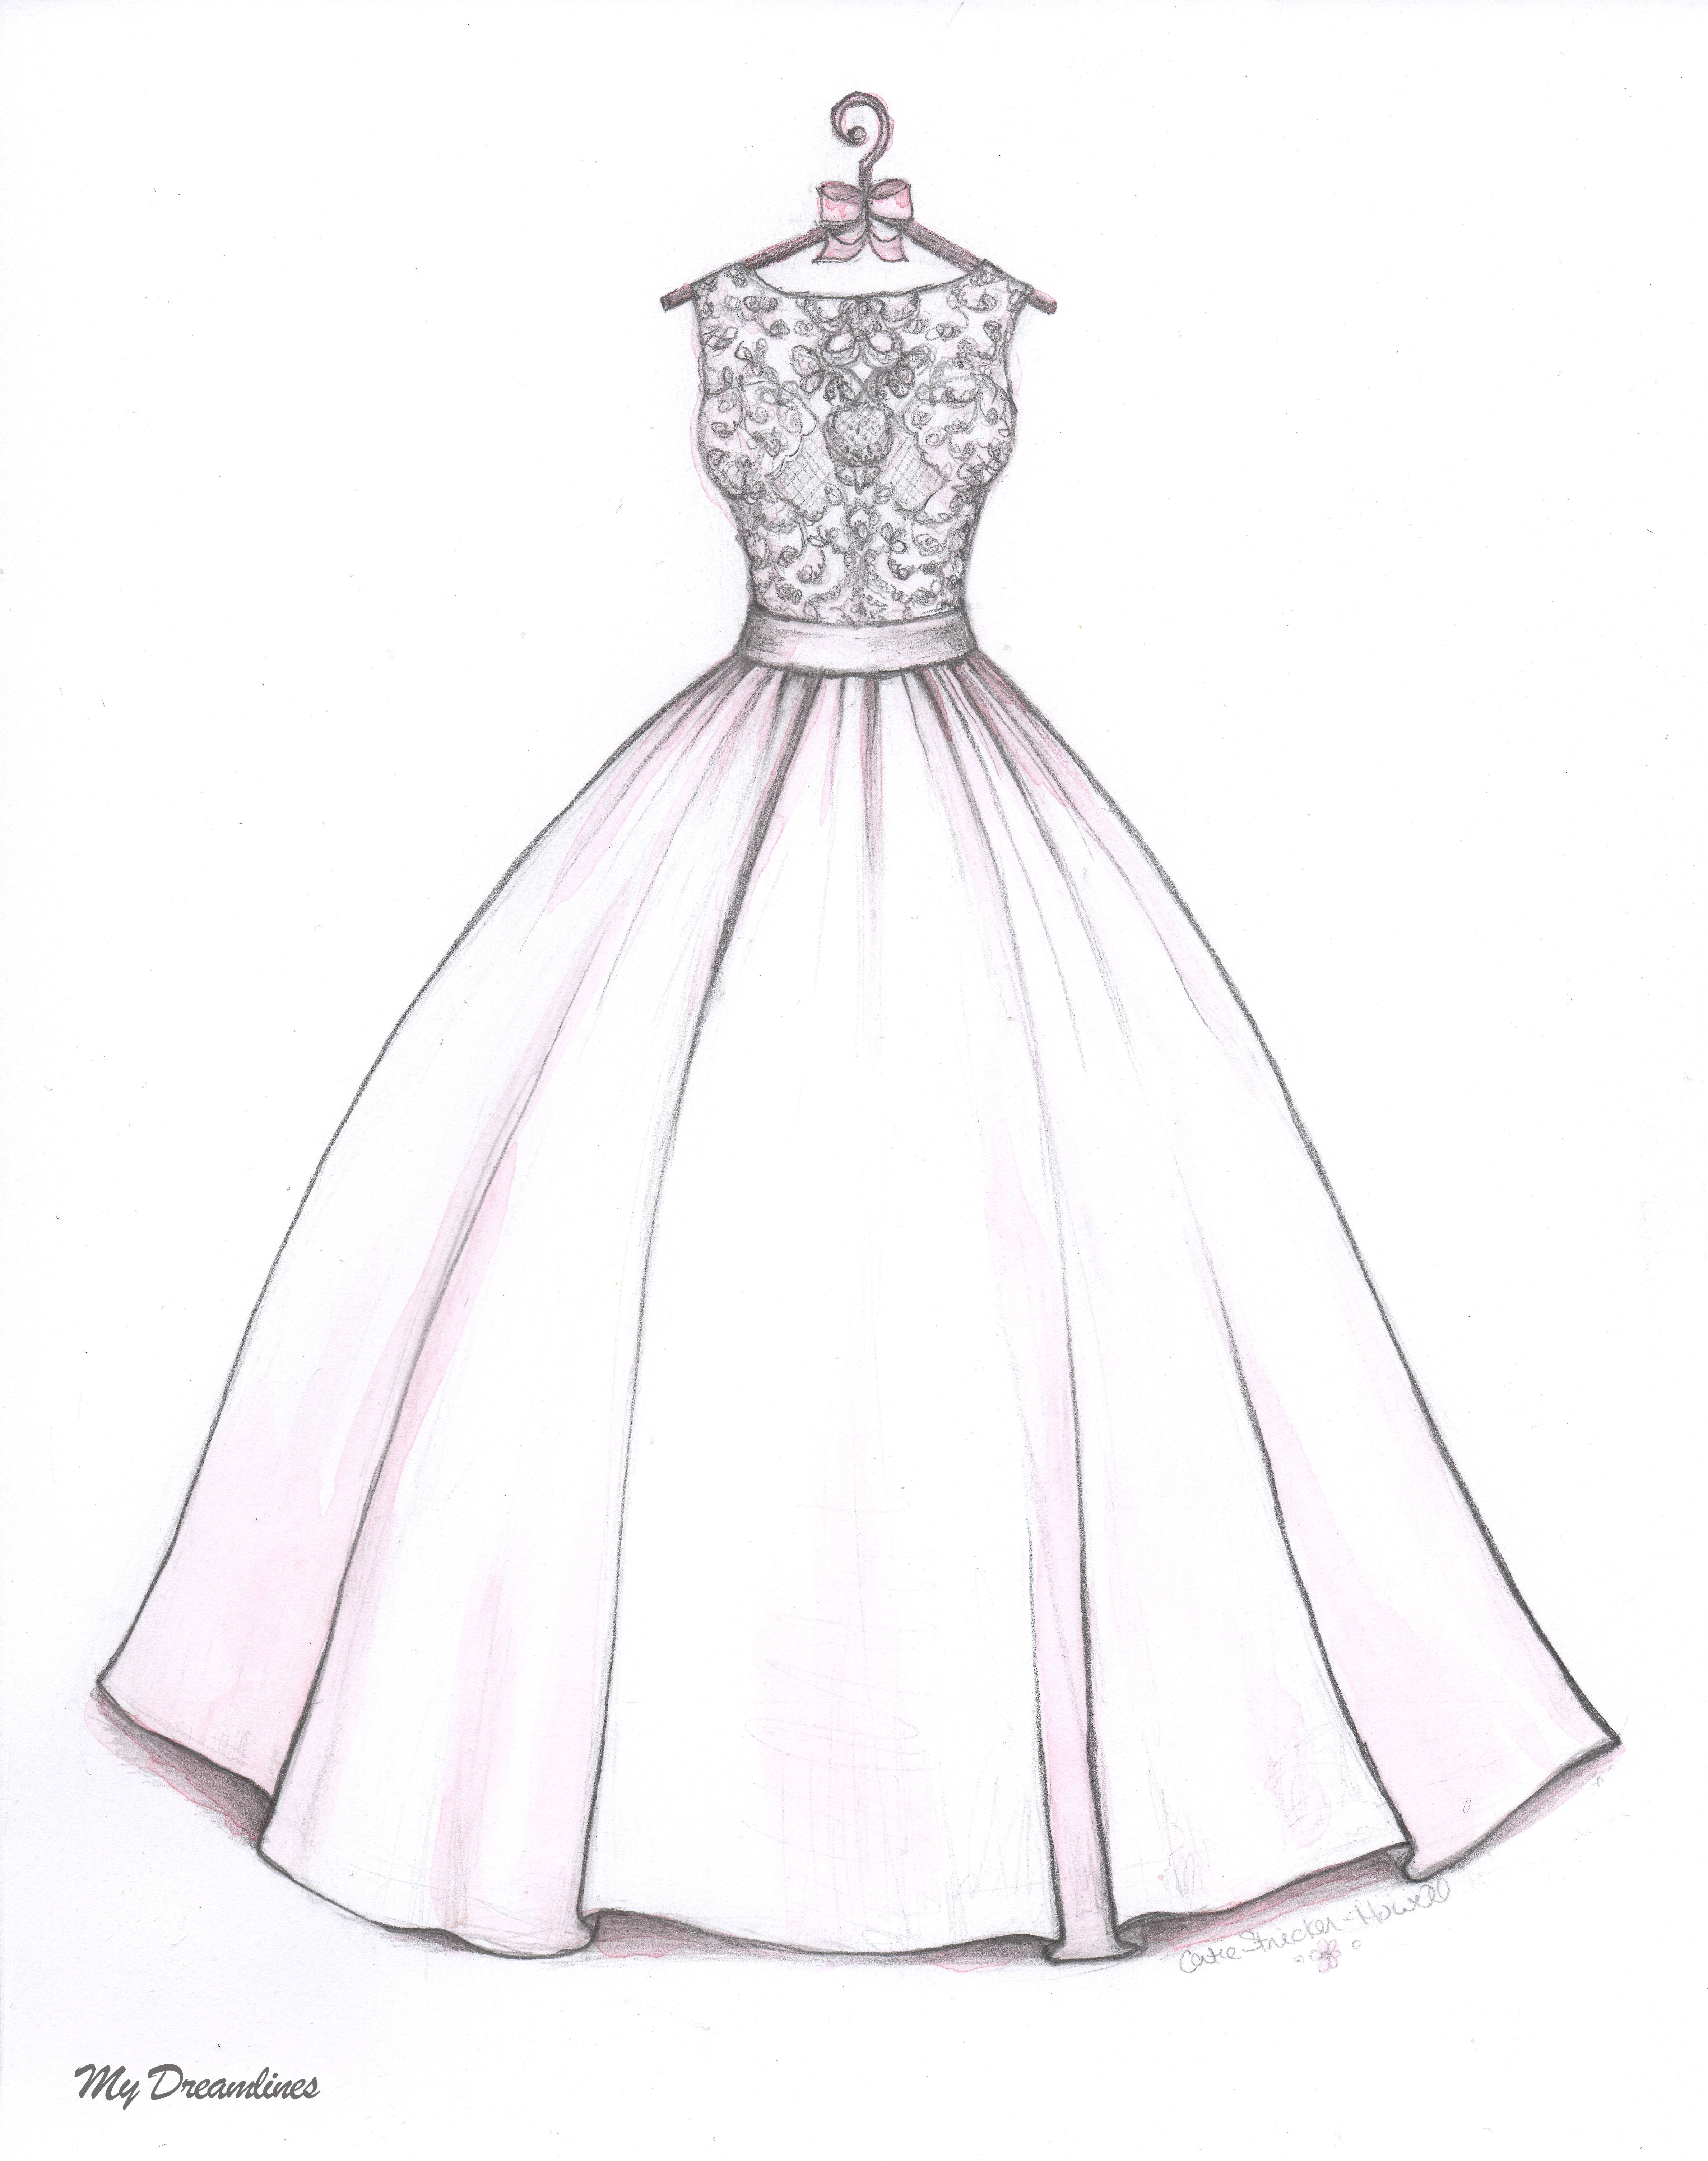 Satin Ballgown skirt with lace bodice wedding dress sketch by Catie ...